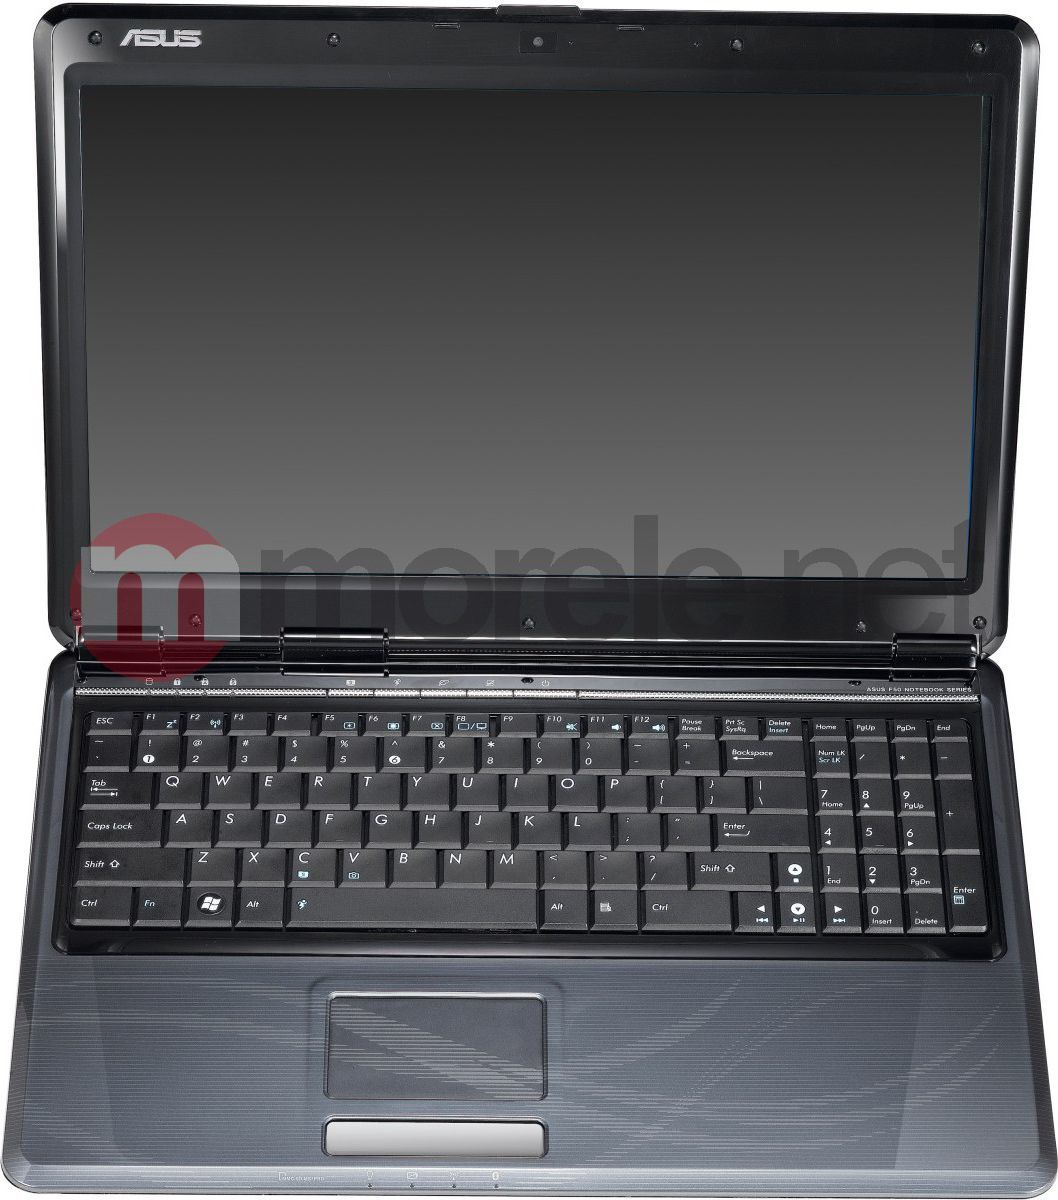 ASUS F50Z WINDOWS 10 DRIVER DOWNLOAD